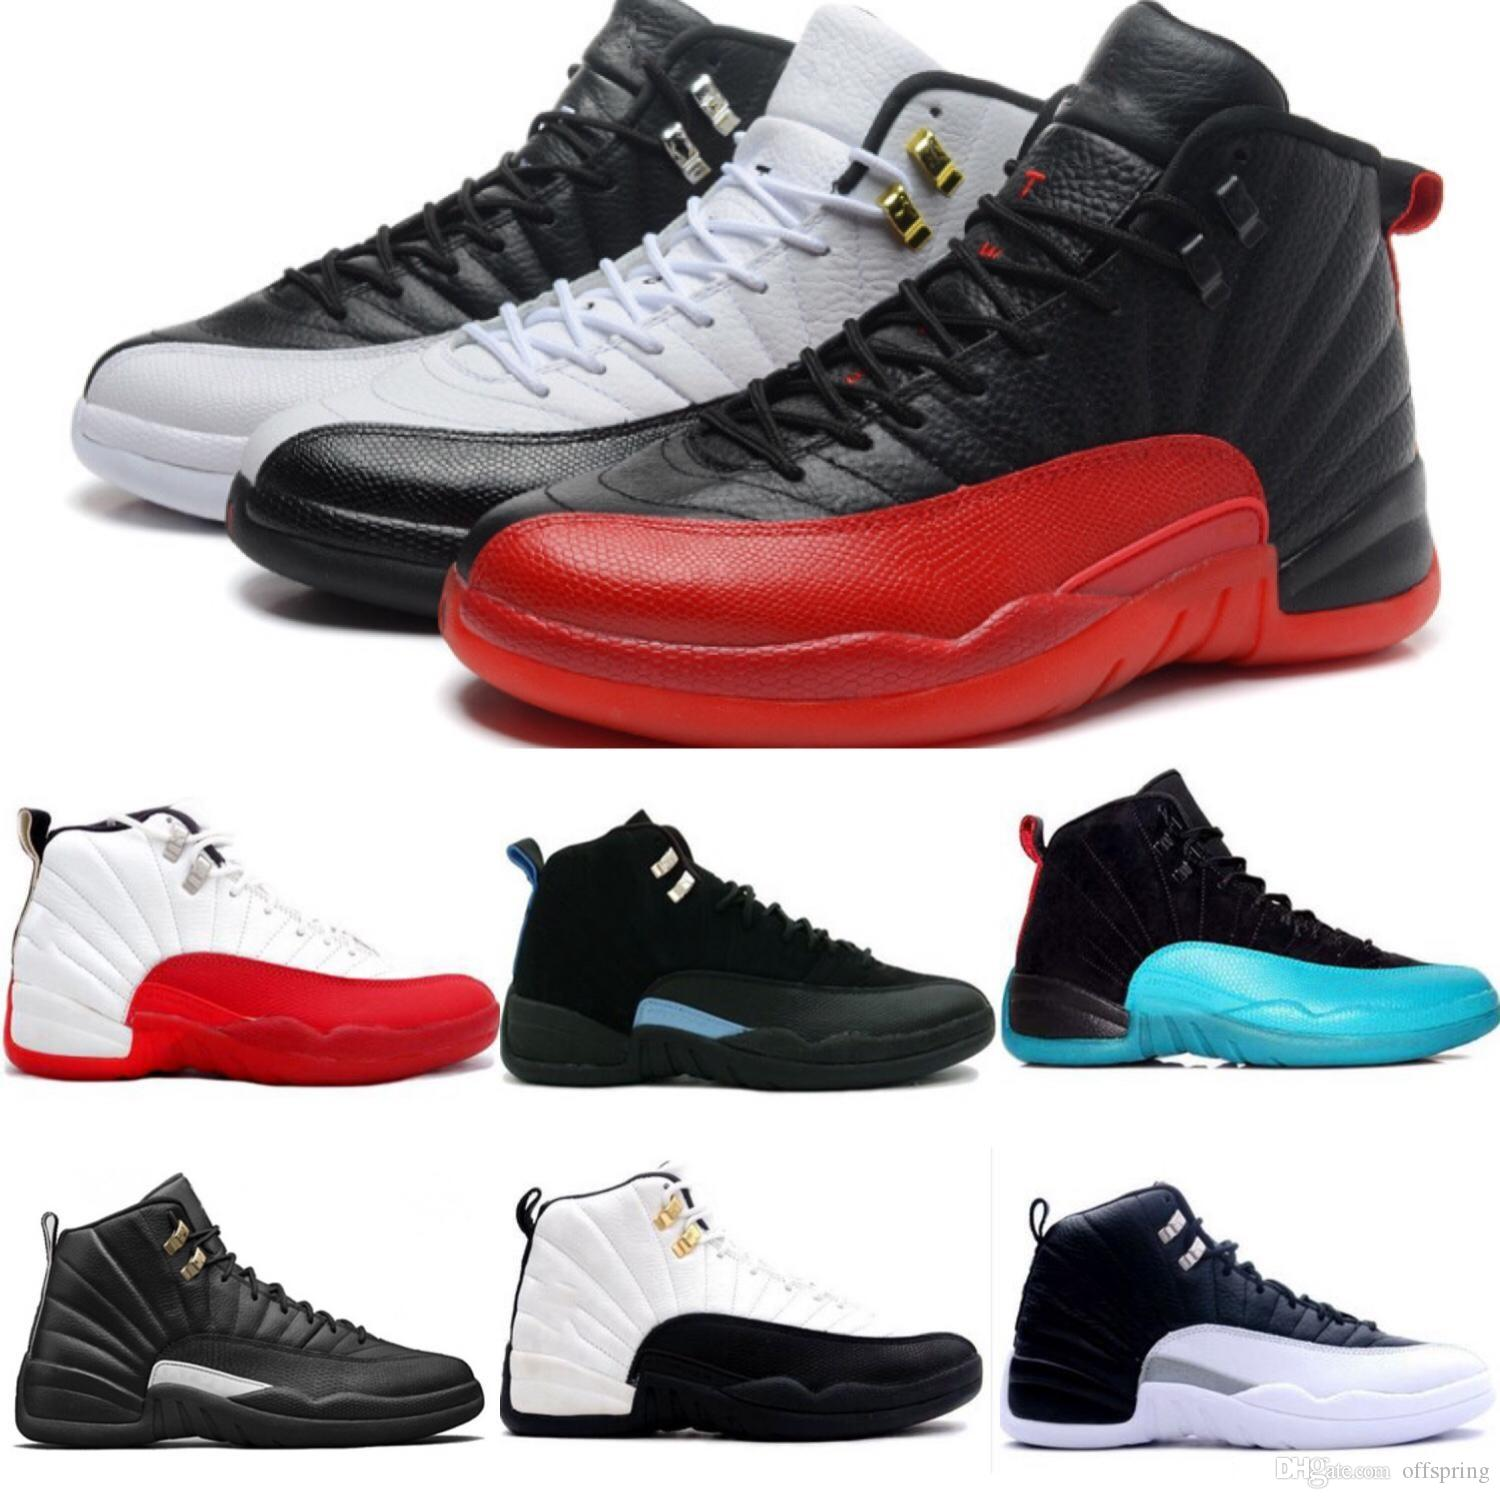 100a5e5aa573 Basketball Shoes 12 12s Bordeaux Dark Grey Wool White Flu Game UNC ...